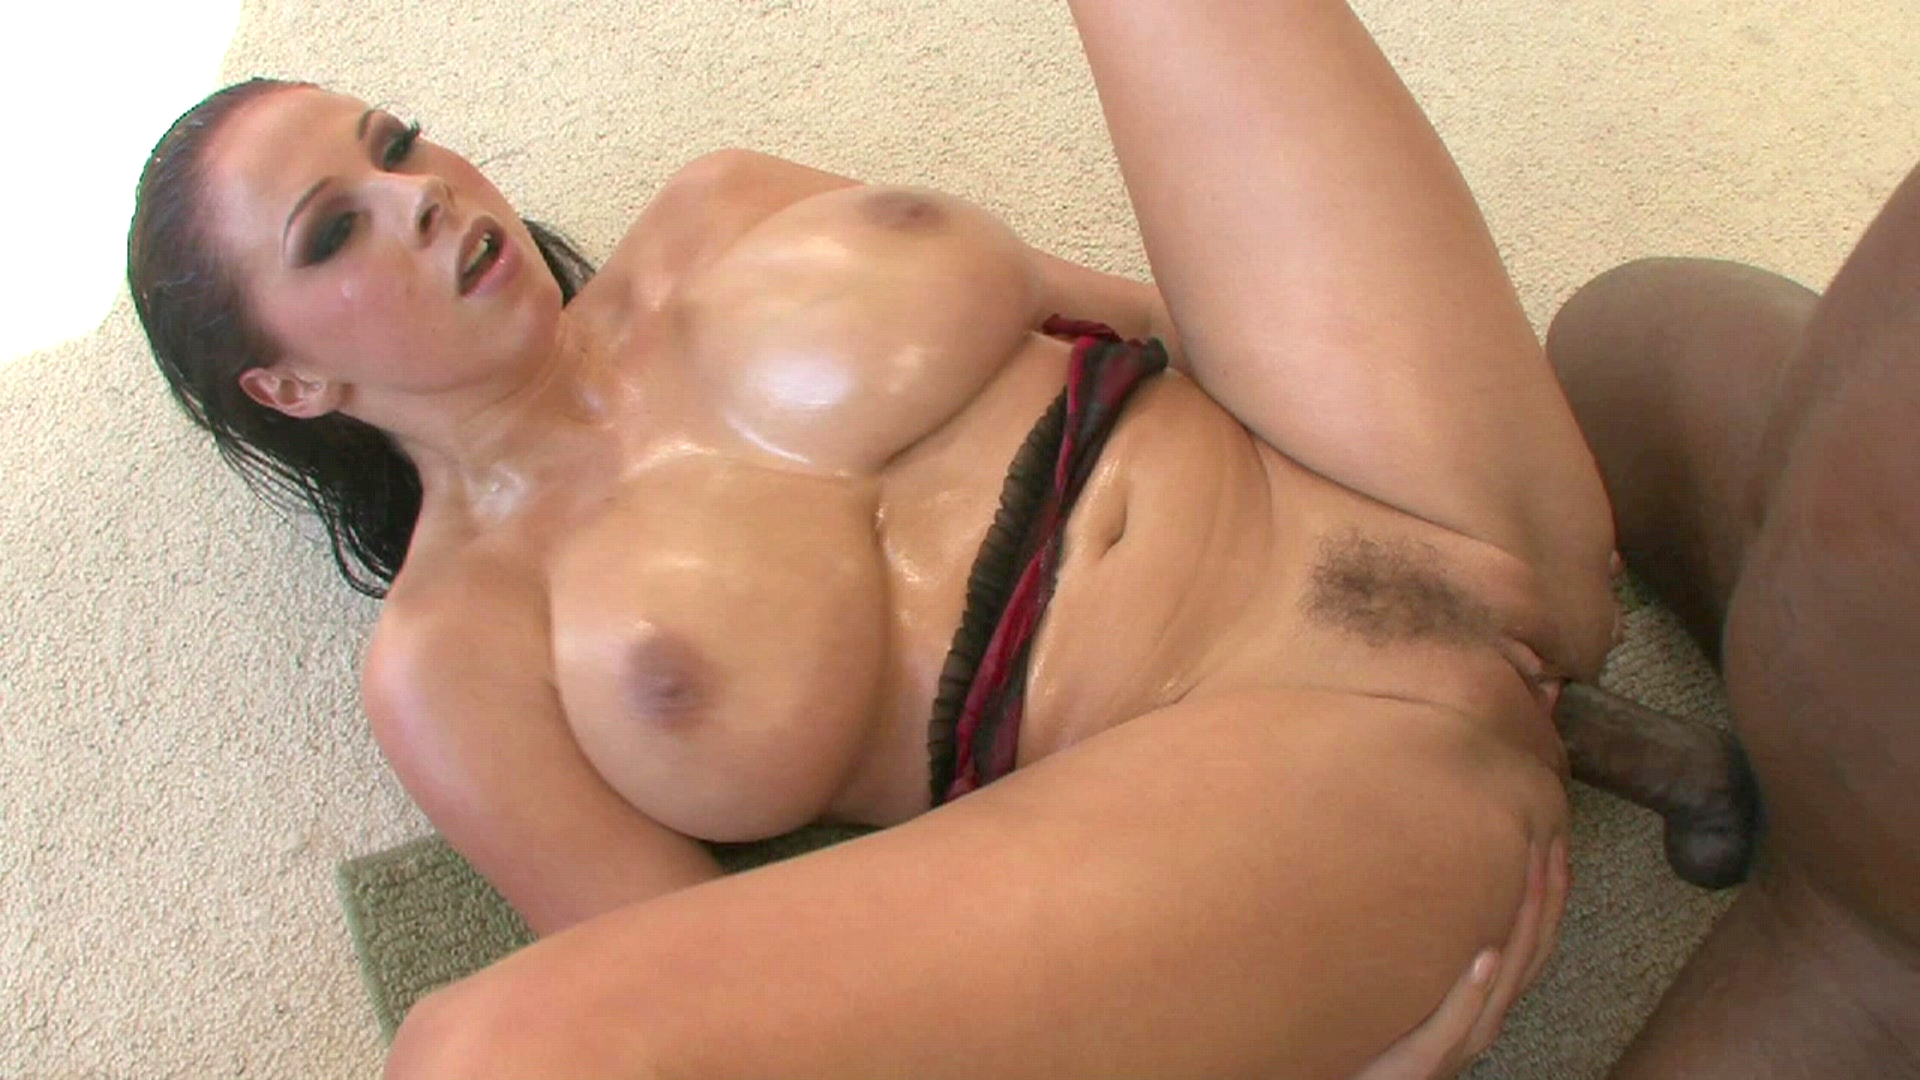 For gianna michaels does anal